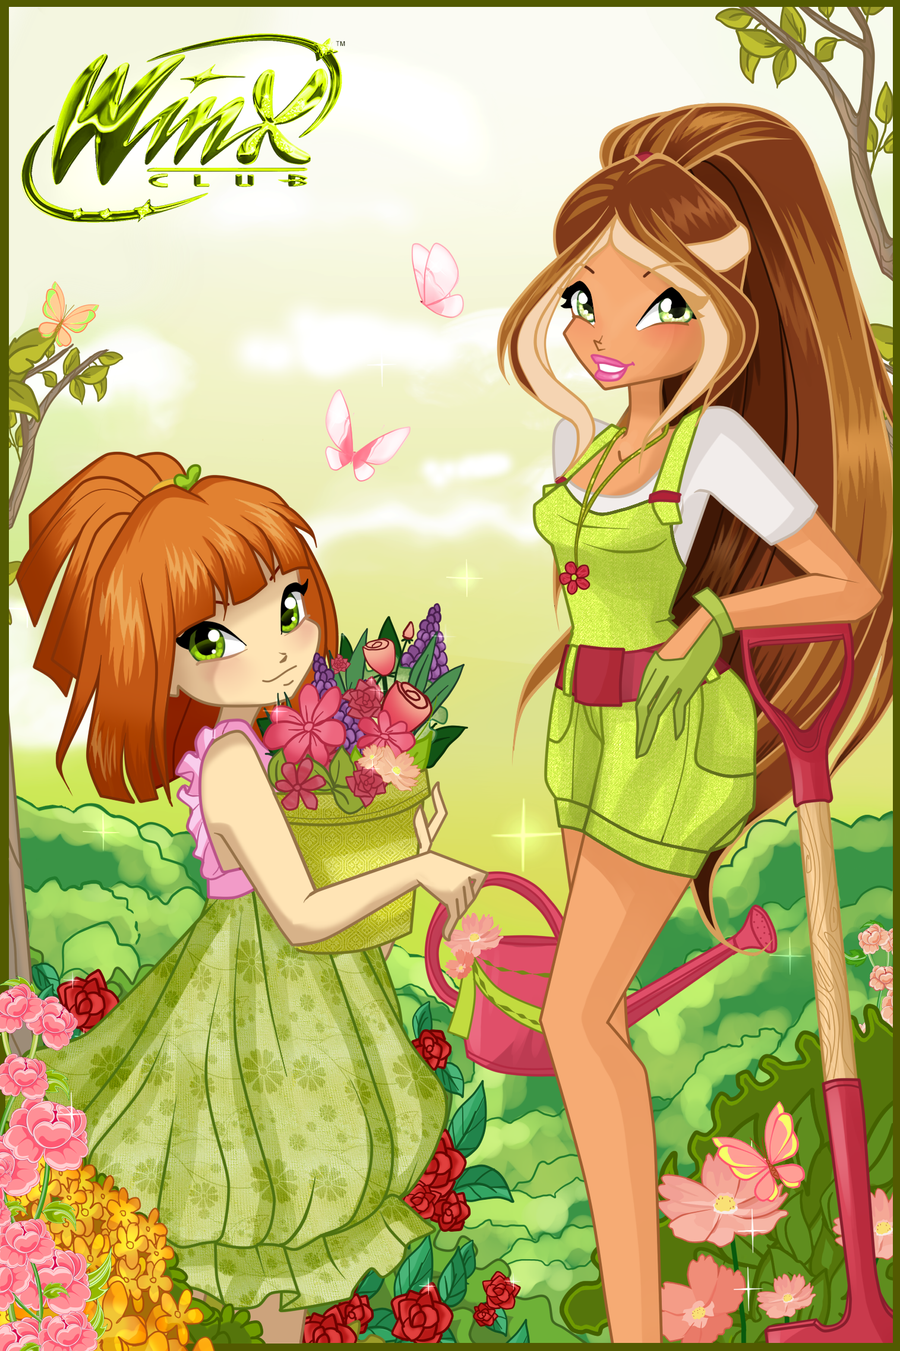 http://fc09.deviantart.net/fs70/i/2012/071/0/5/cover_of_winx_club_forum_magazine_march_by_alamisterra-d4shwx7.png